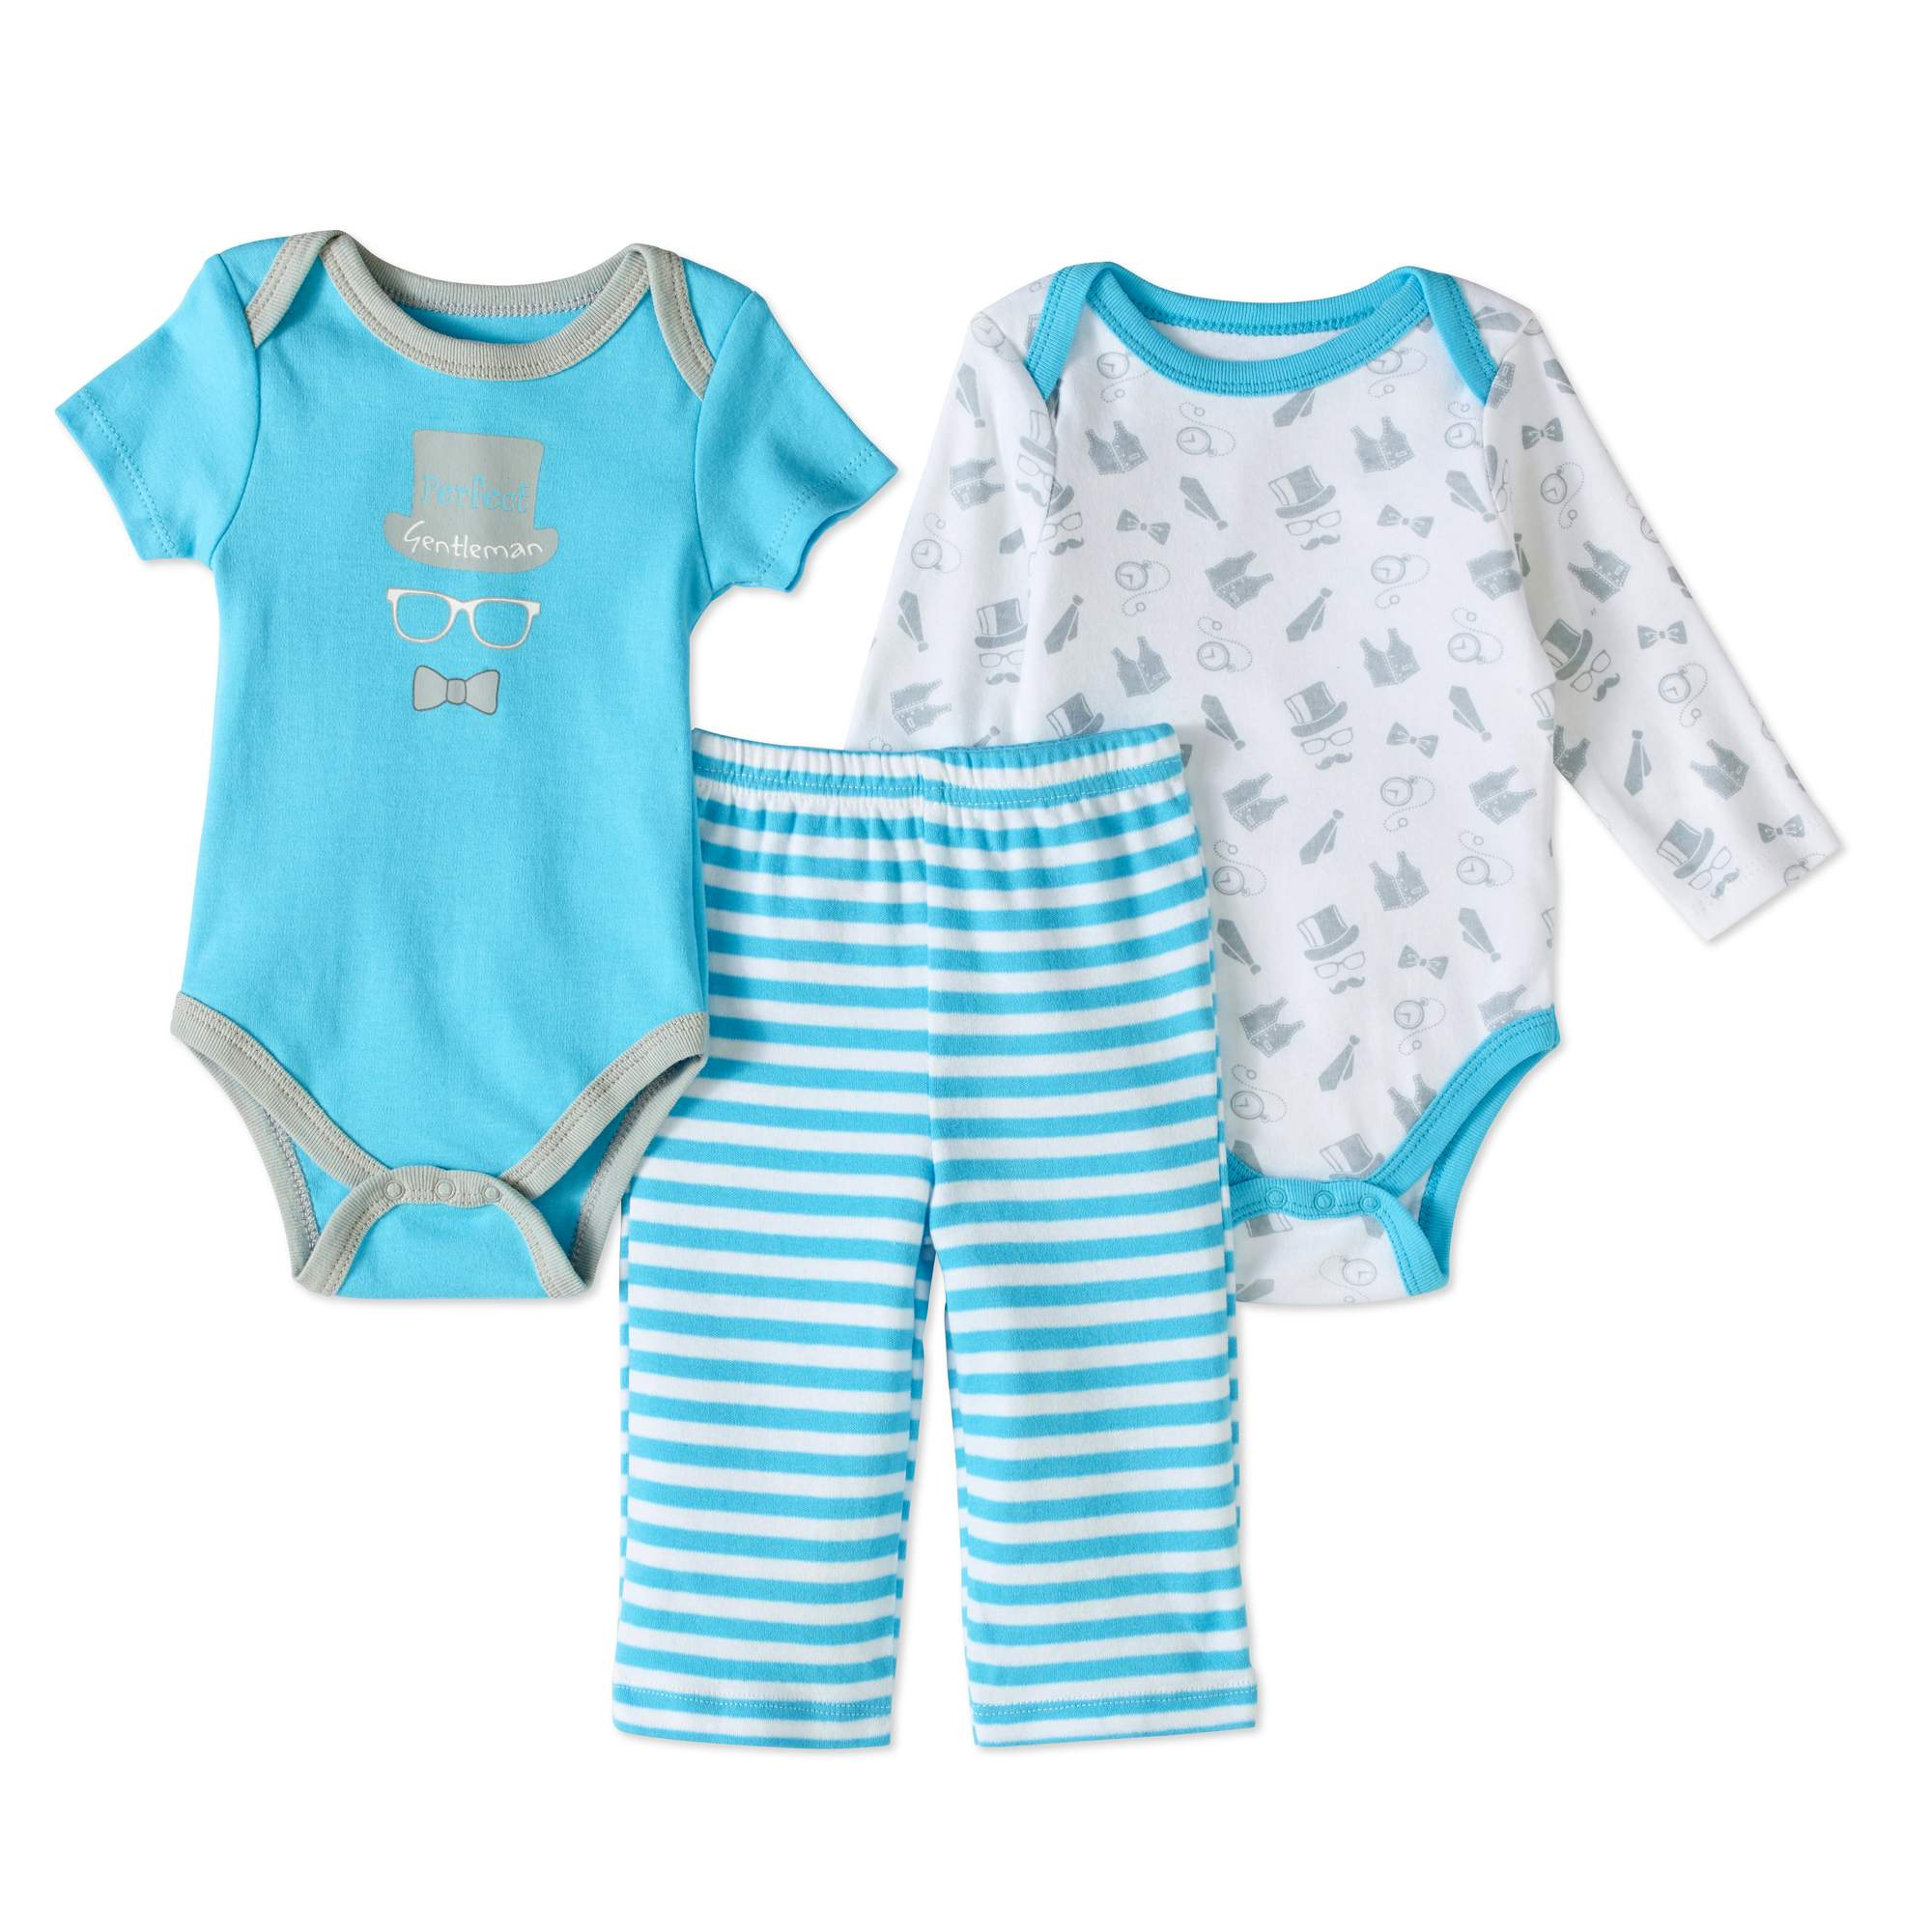 Quiltex Newborn Baby Boys' Turn-Me-Around 3-Piece Set